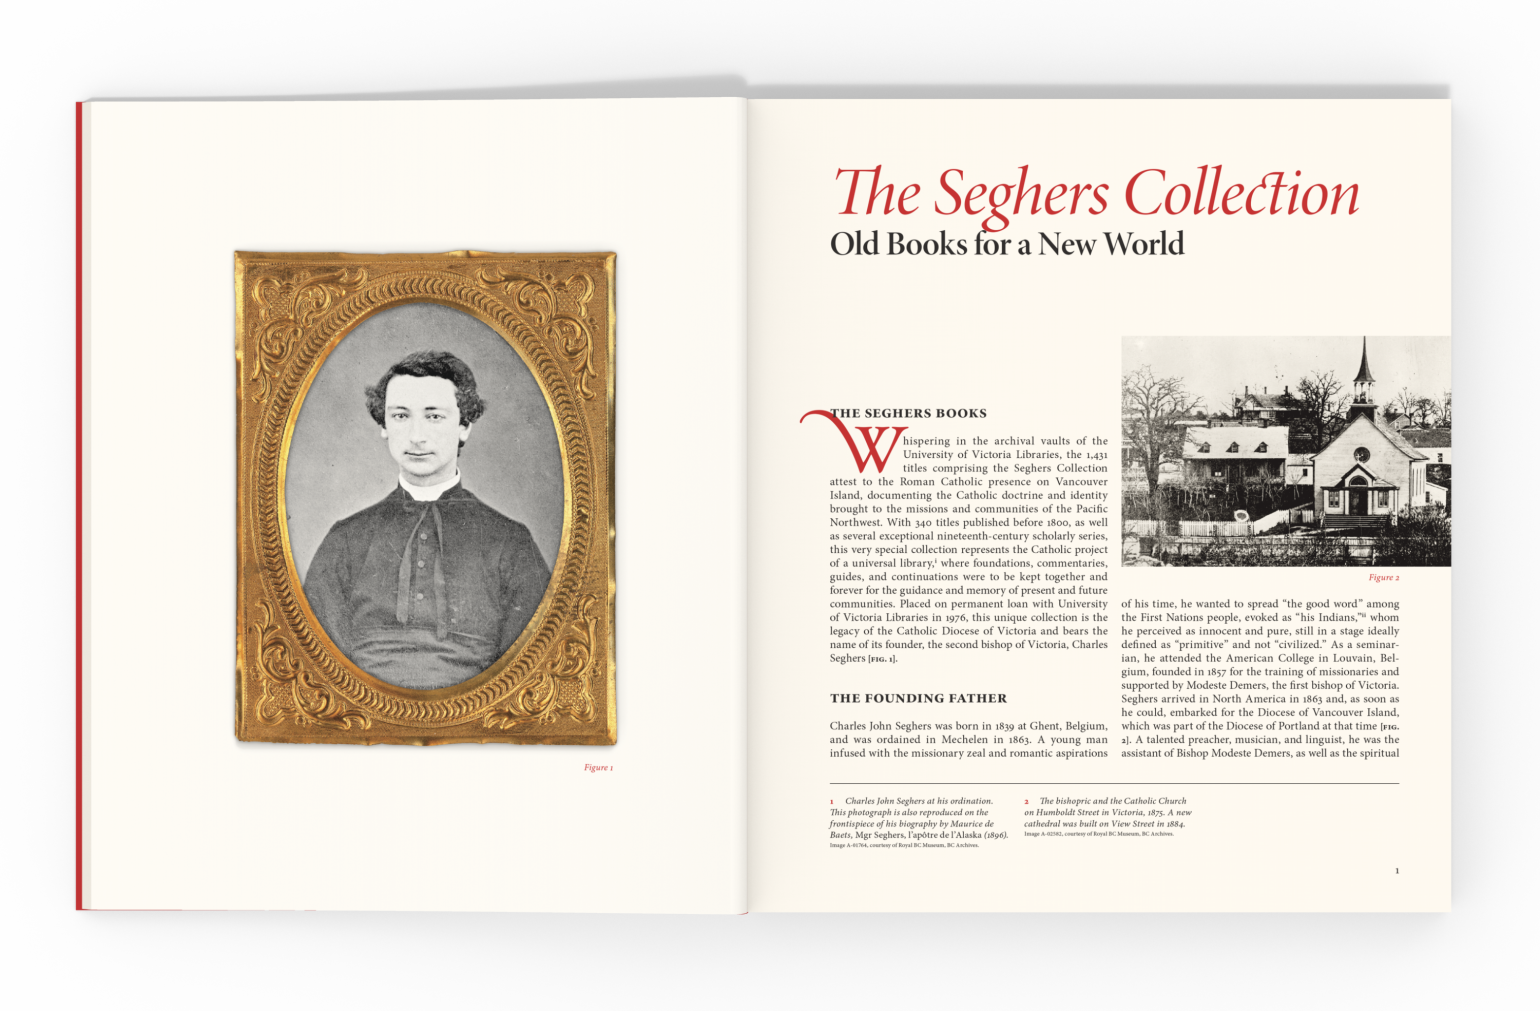 The Seghers Collection, sample spread